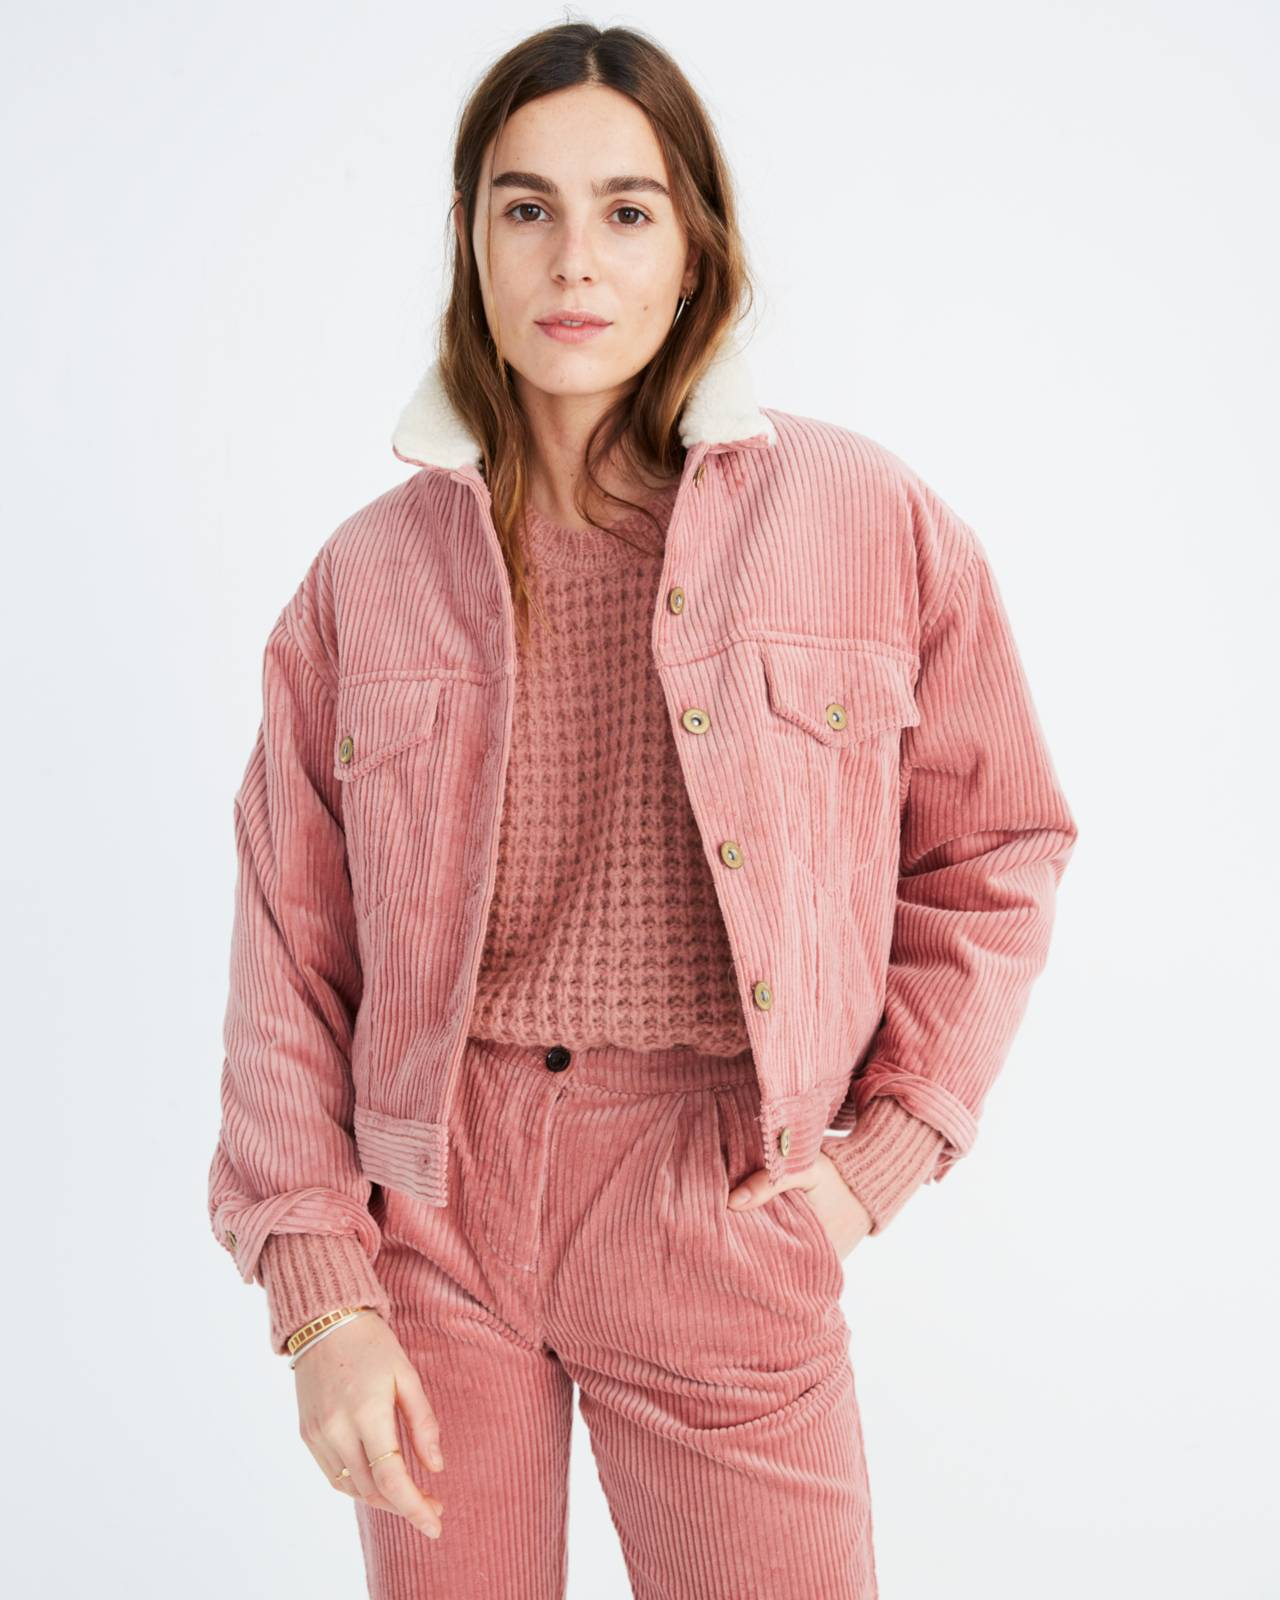 Sess�n™ Corduroy Ginetta Jacket in misty rose rocco image 2